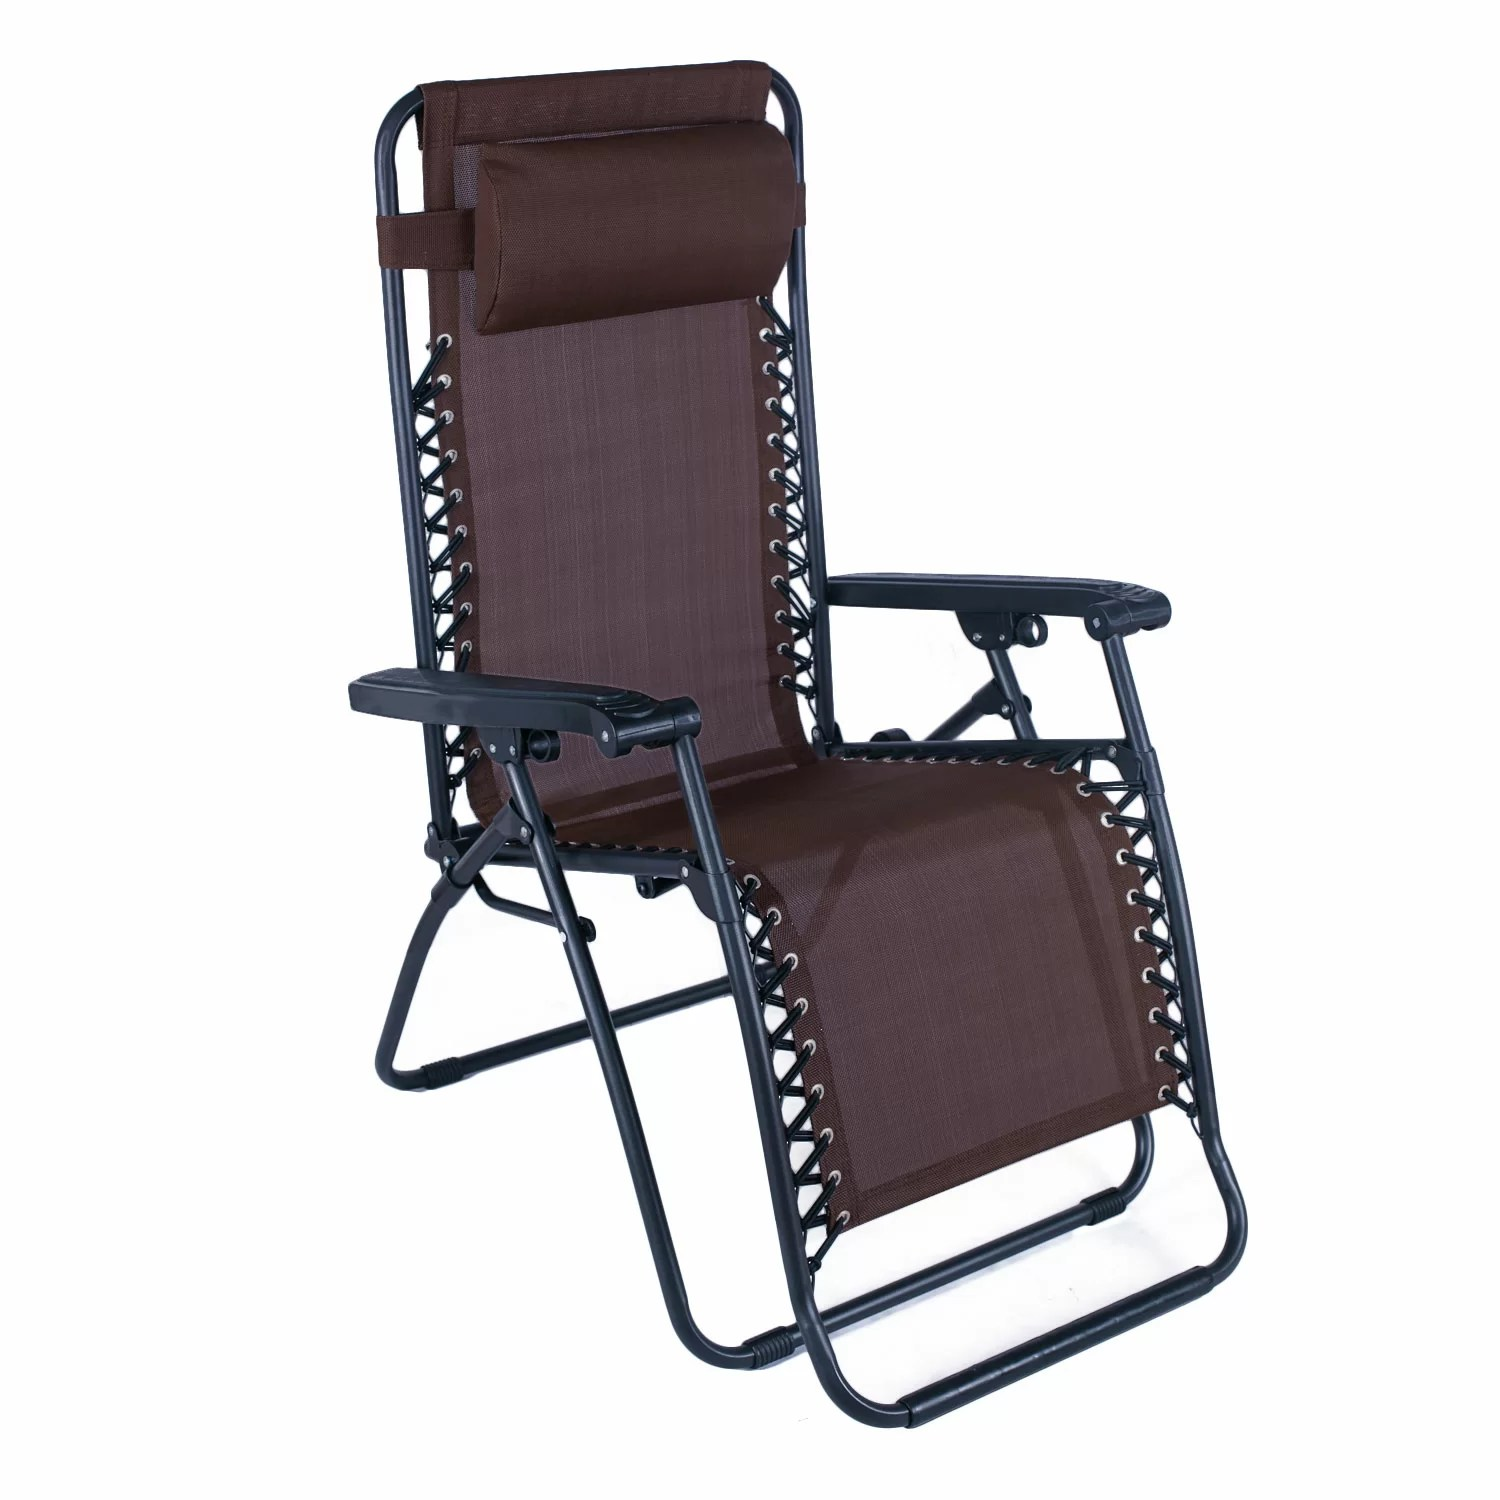 AdecoTrading Outdoor Folding and Reclining Zero Gravity